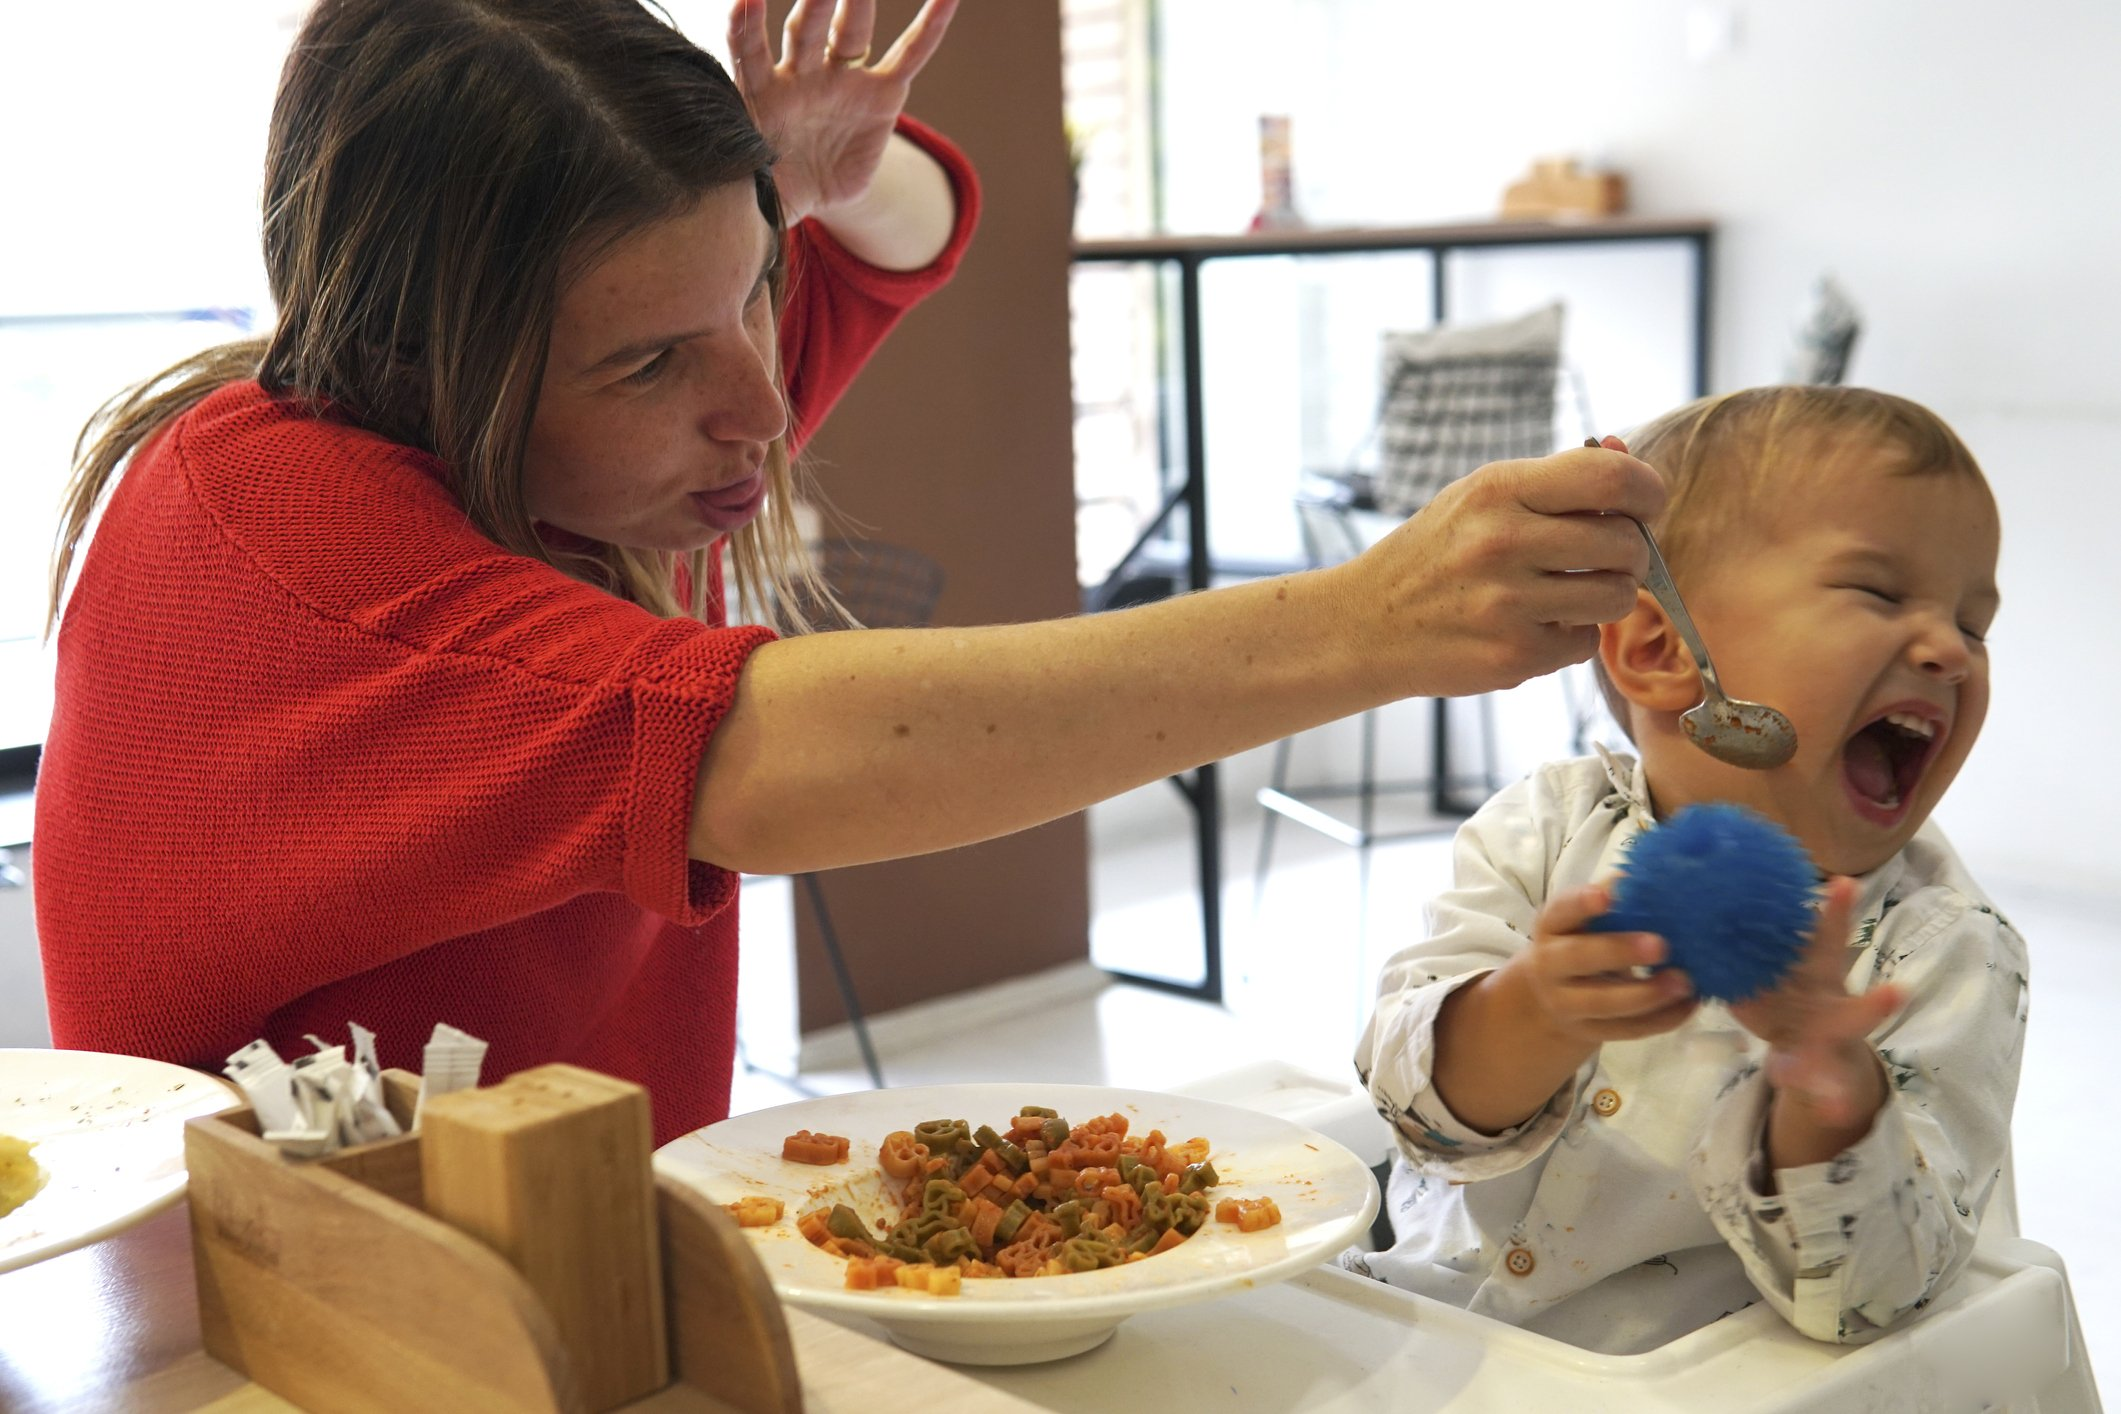 Child bawls and refuses to eat at a restaurant while mother tries to feed him | Photo: Getty Images